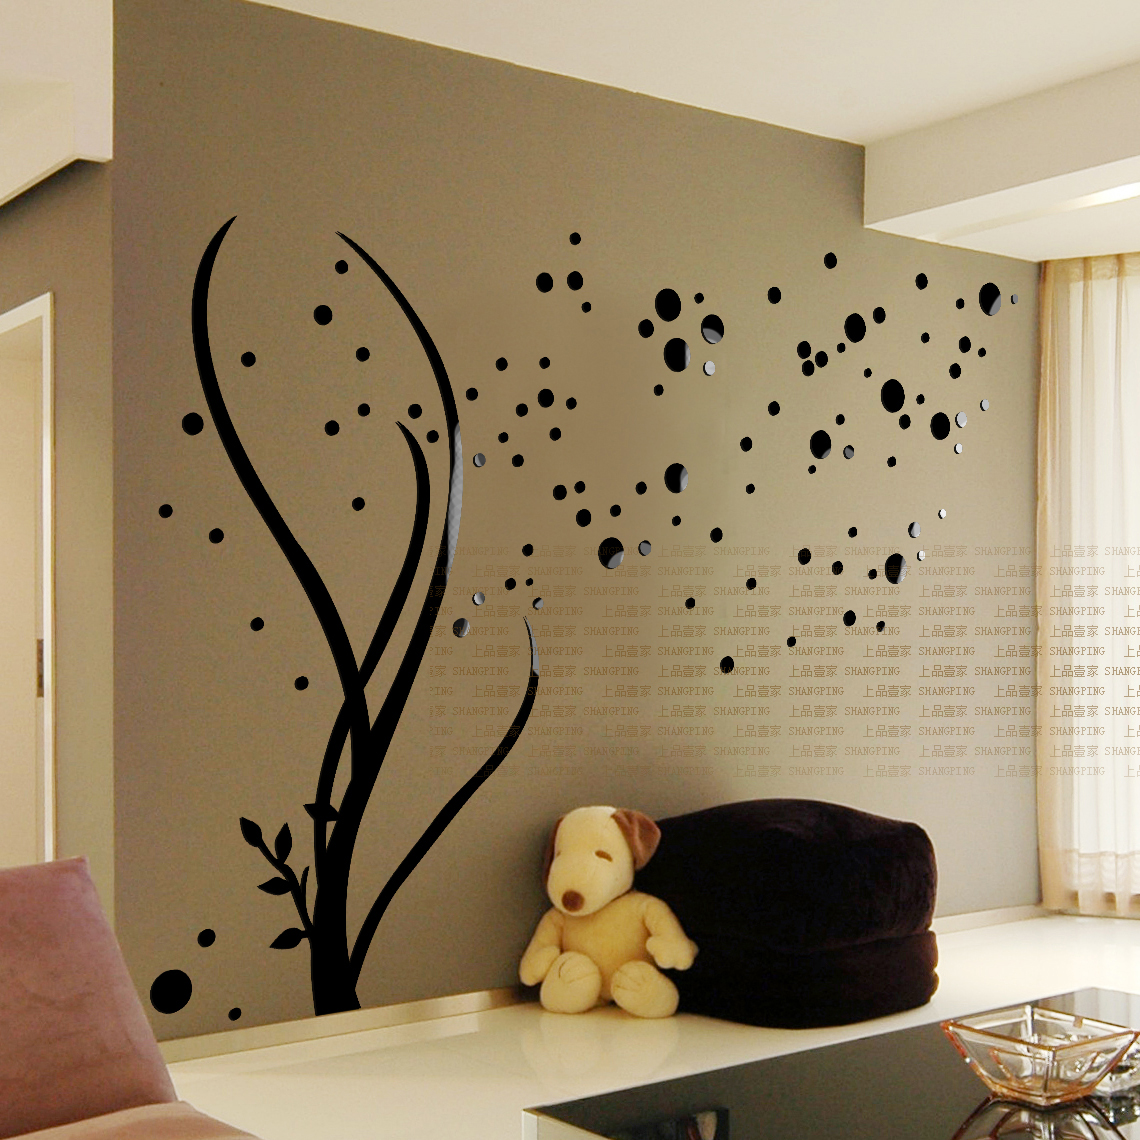 Dandelion Wall Art Stickers Wall Decor Stickers For Living Room Online